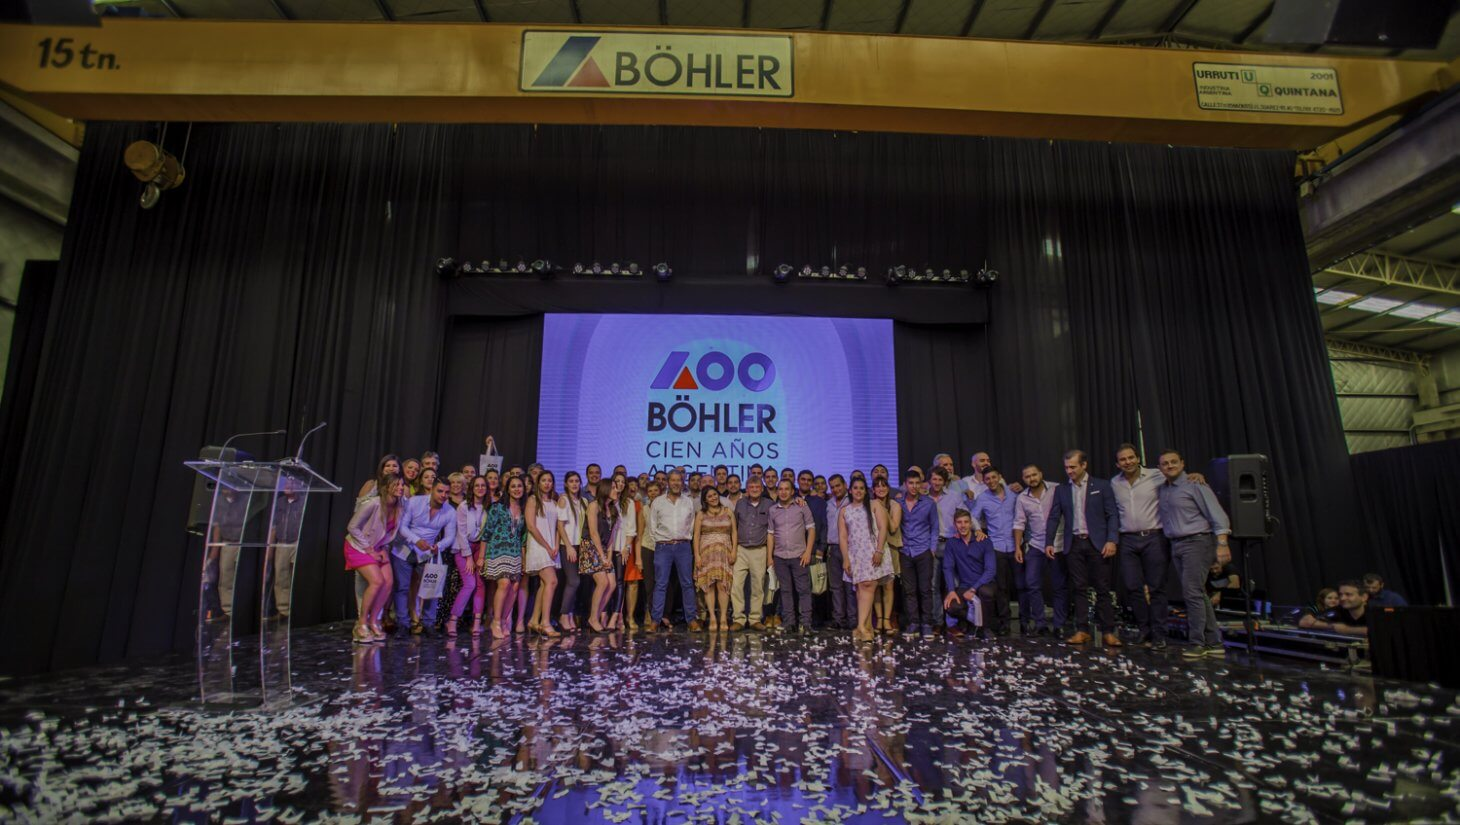 Celebrating Böhler's 100 years in Argentina